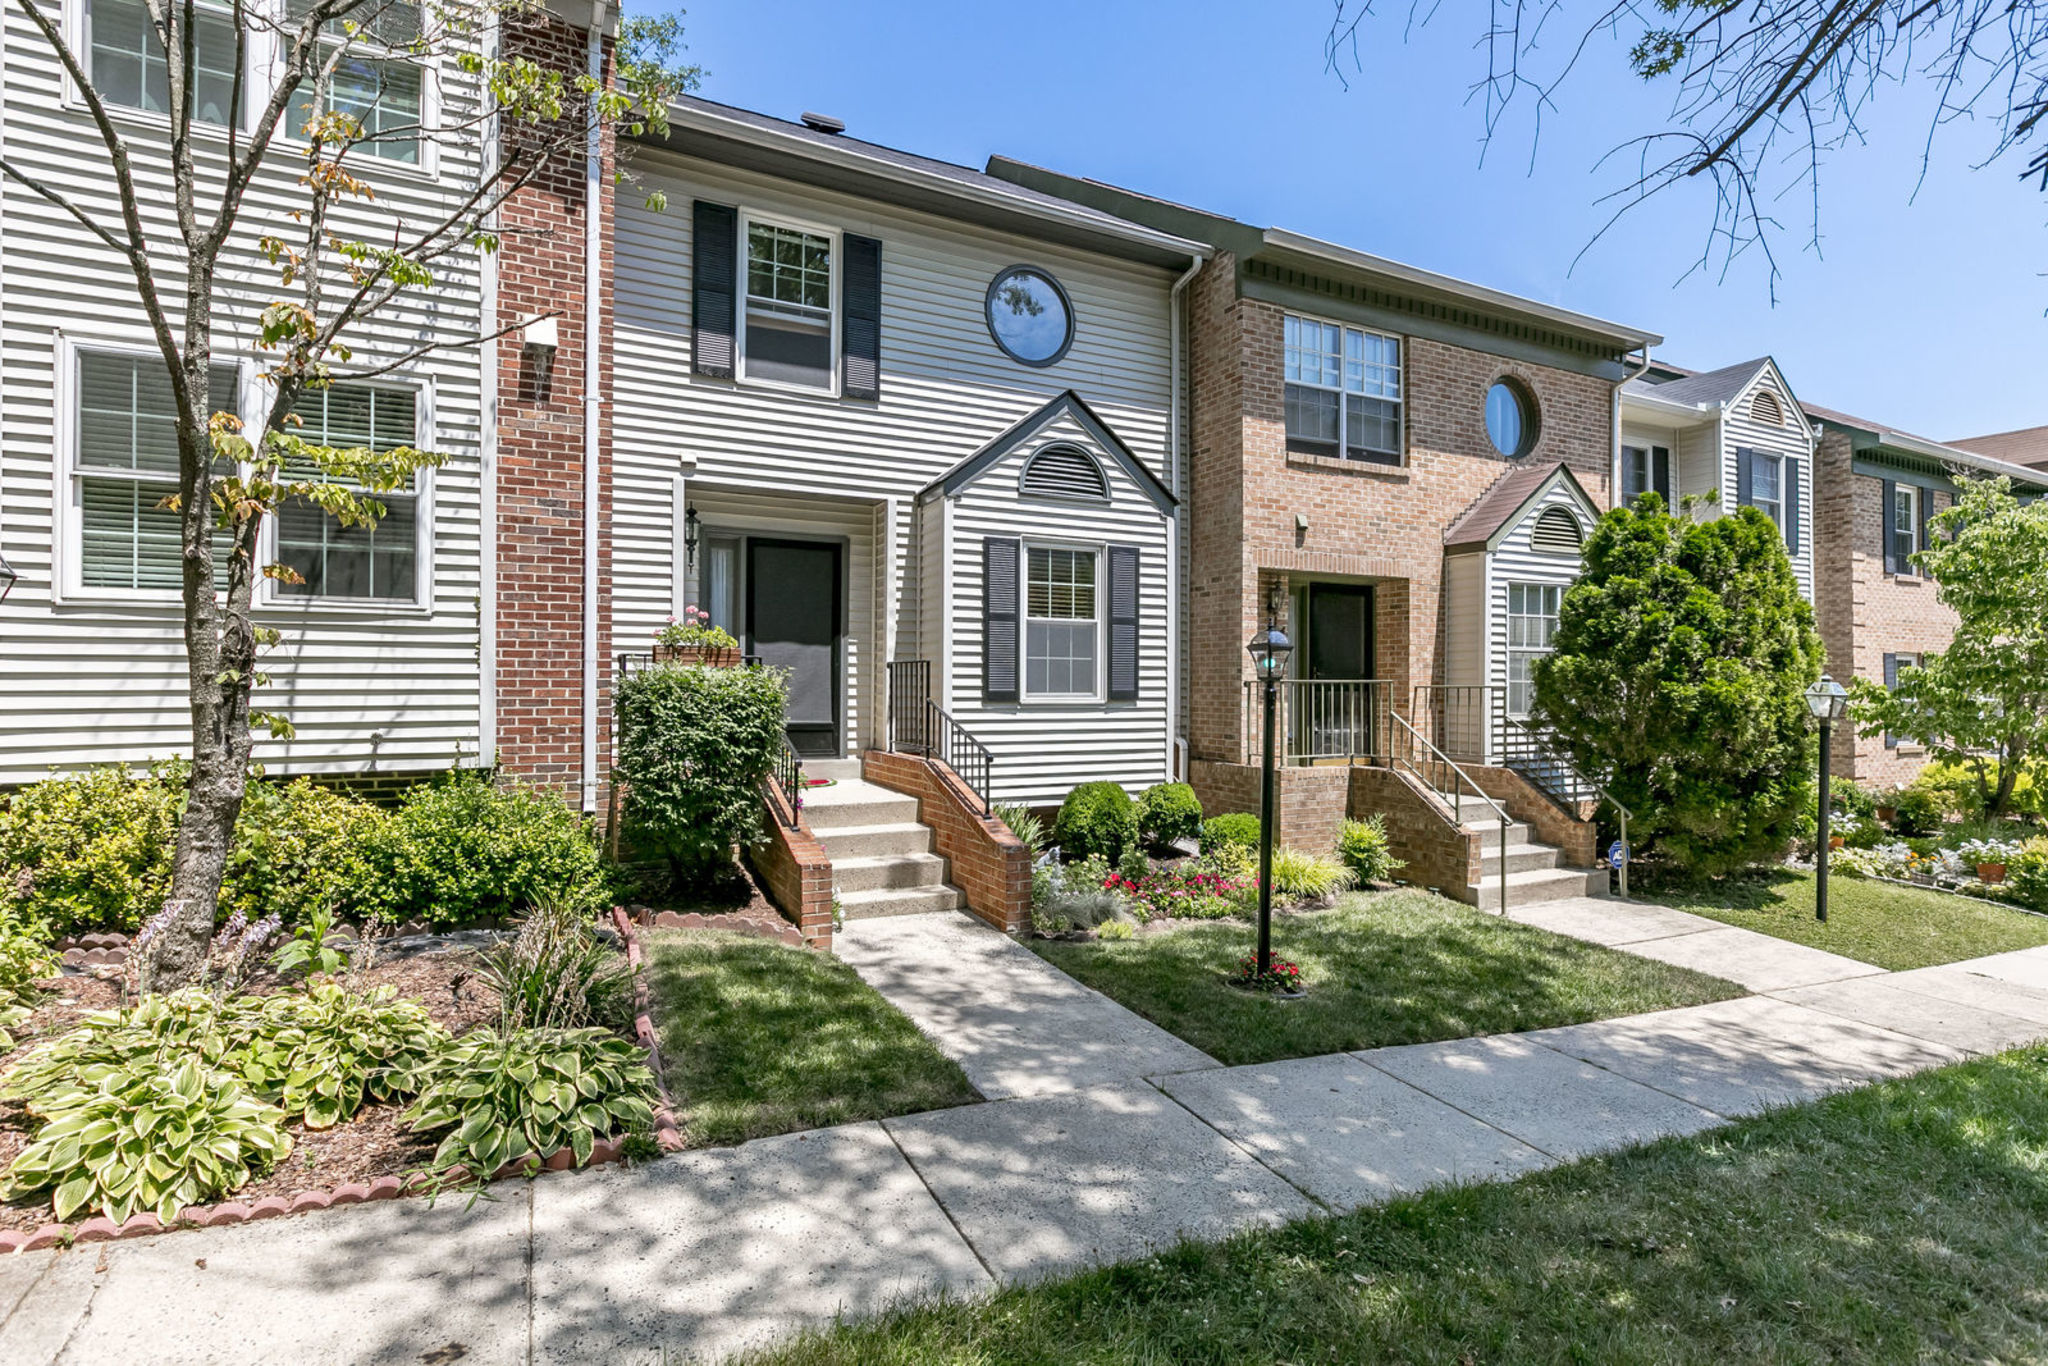 Van Dorn Village Just Listed Not in MLS 6030 Crocus Ct Alexandria Va 22310